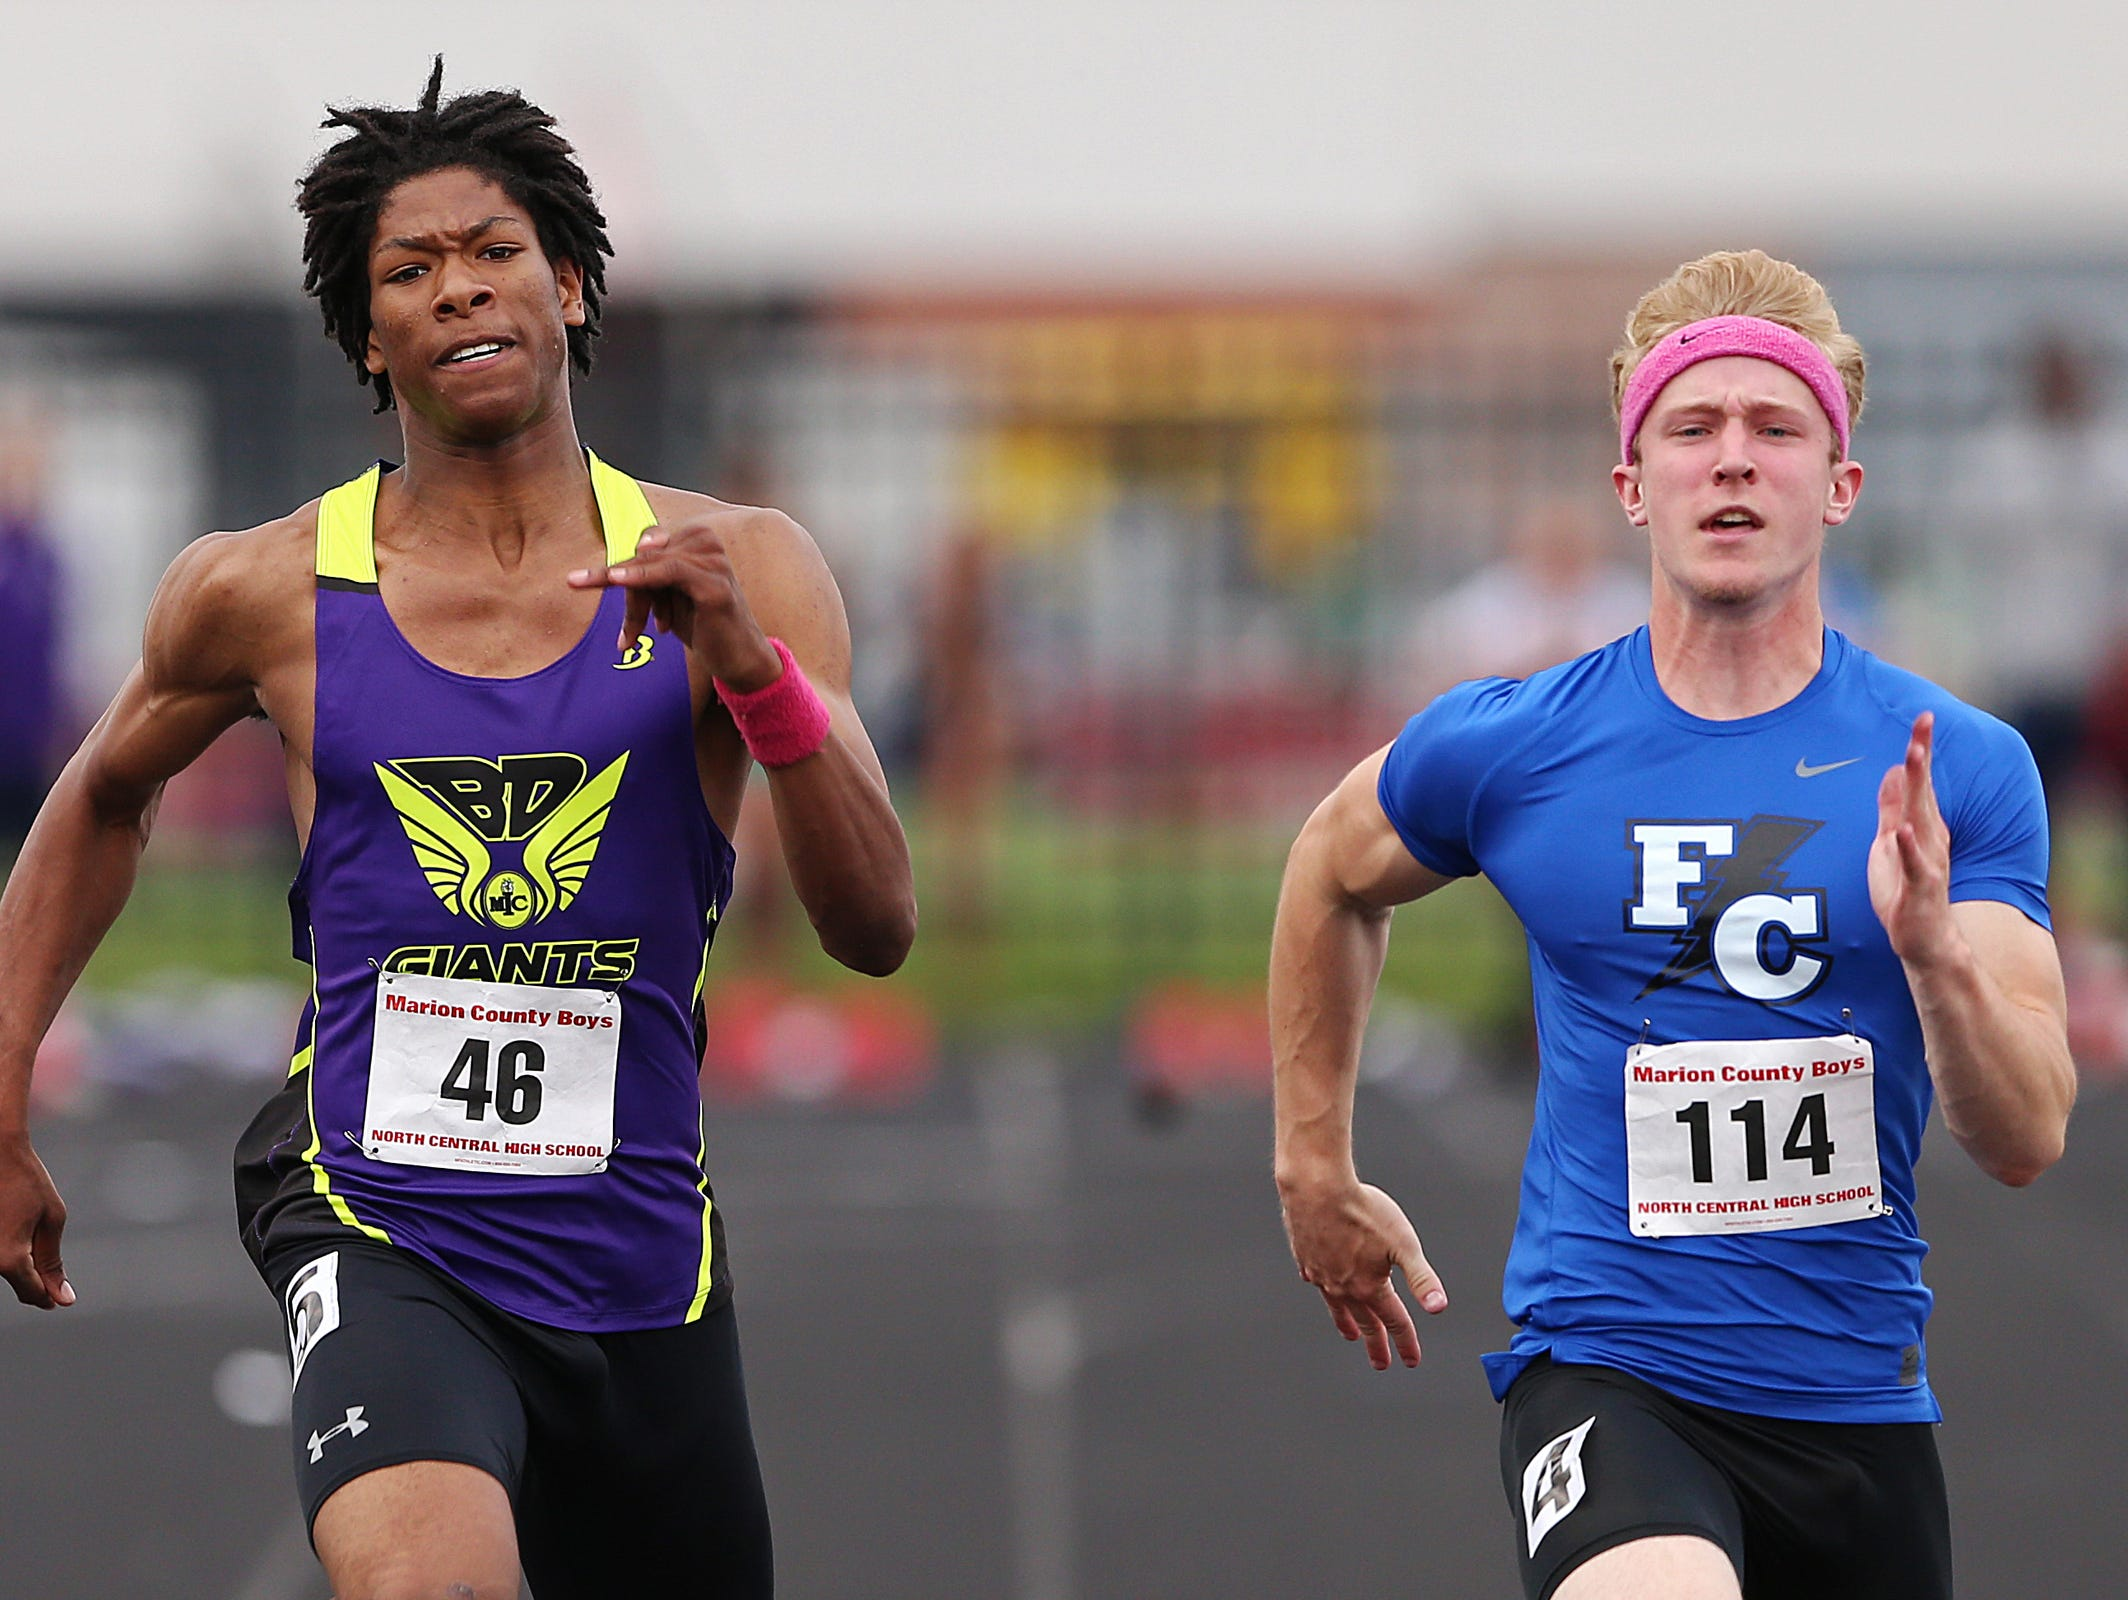 From left, Ben Davis senior Christian Powell and Franklin Central senior Andrew DeRidder approach a tight finish in the 100 meter dash, during a Marion County boys track meet at North Central High School, Indianapolis, Wednesday, May 11, 2016. Powell placed second, and DeRidder placed first, in 10.83 seconds.